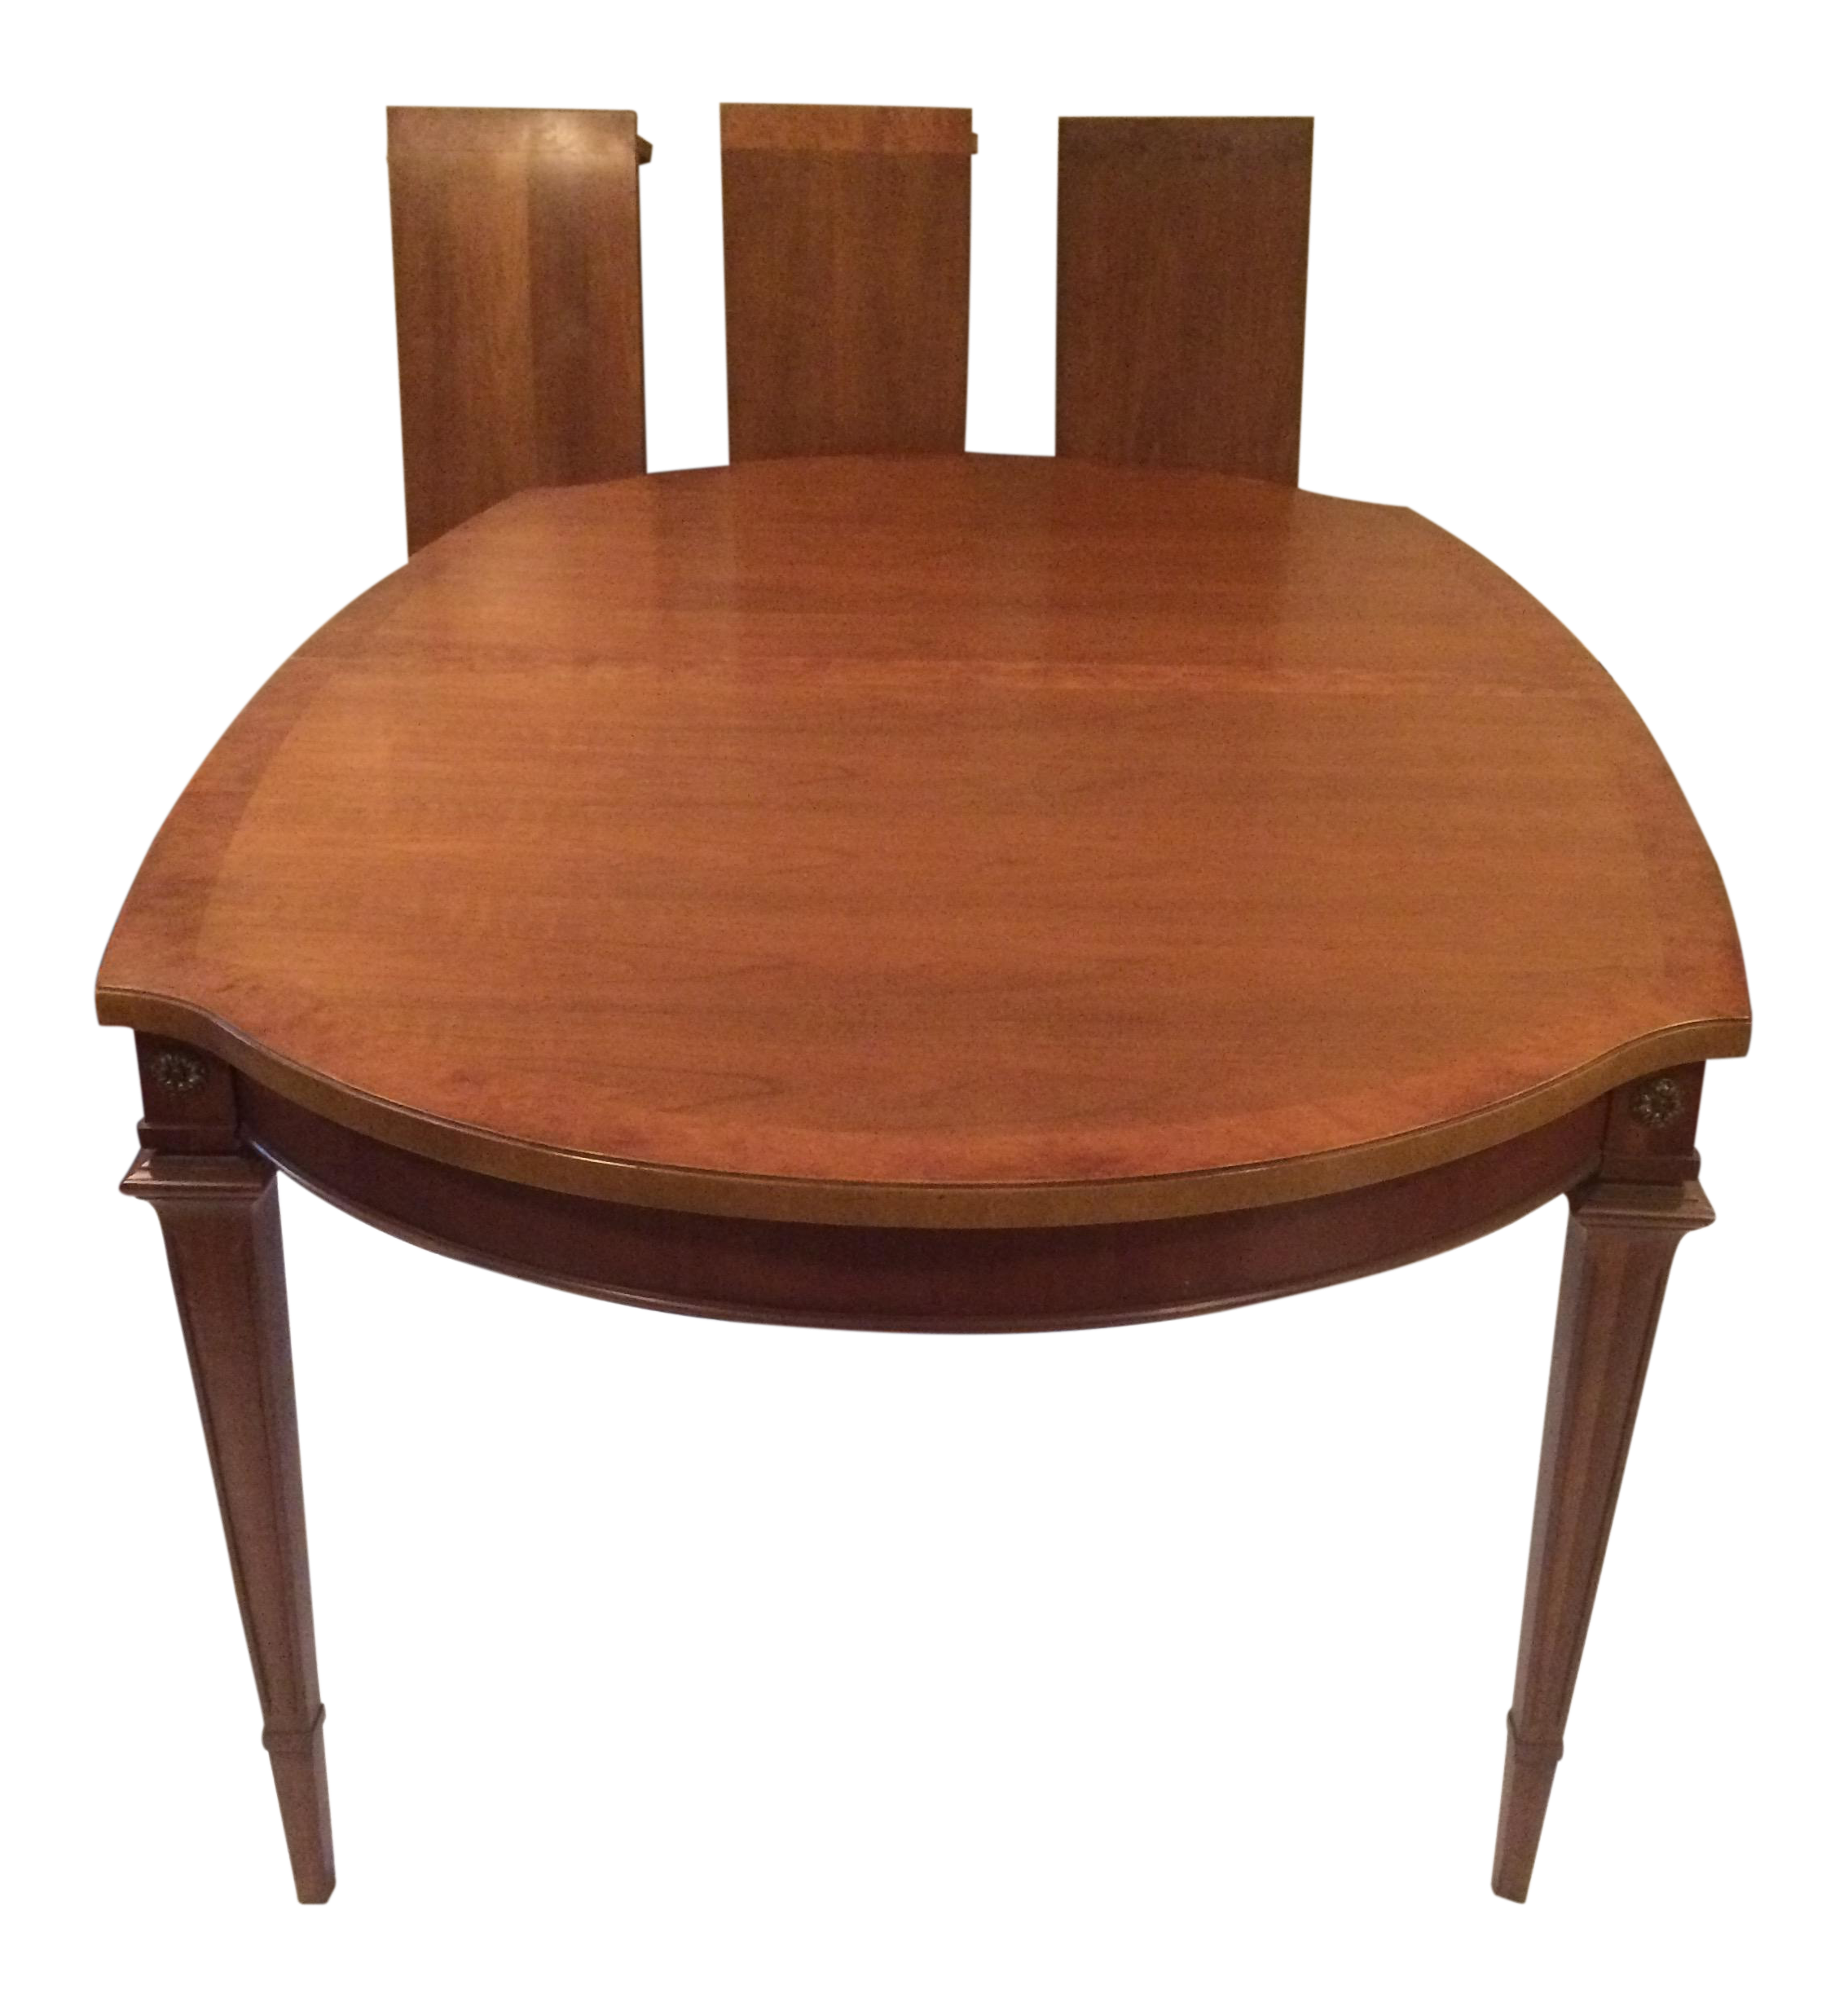 gently used thomasville furniture - save up to 40% at chairish